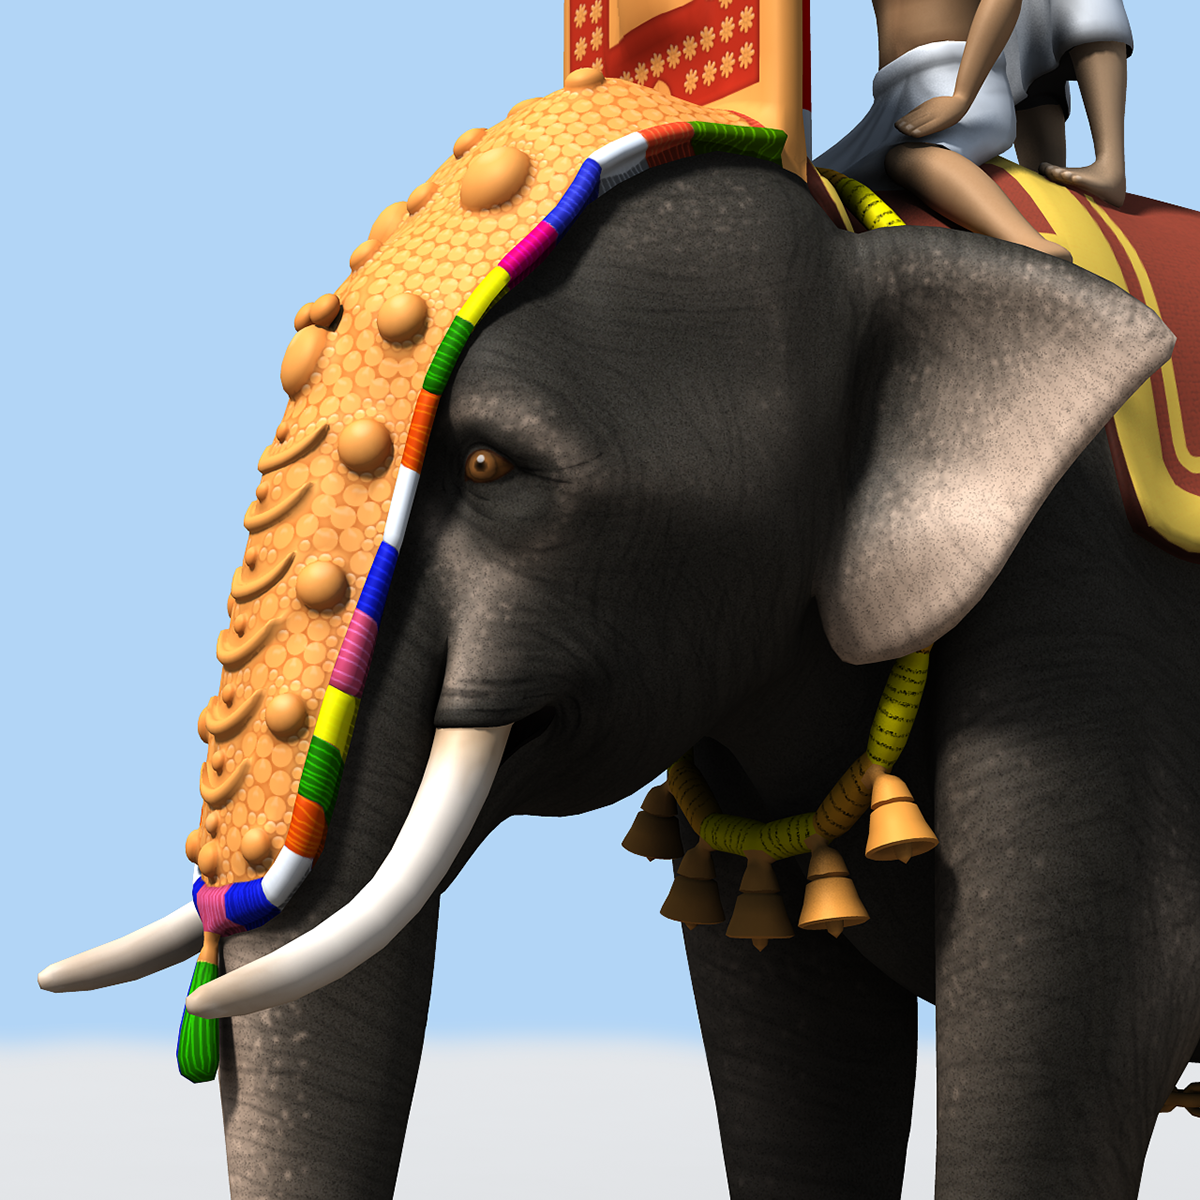 Download Kerala Elephant Png Hd Png Gif Base Download this free vector about native decorated elephant, and discover more than 9 million professional graphic resources on freepik. download kerala elephant png hd png